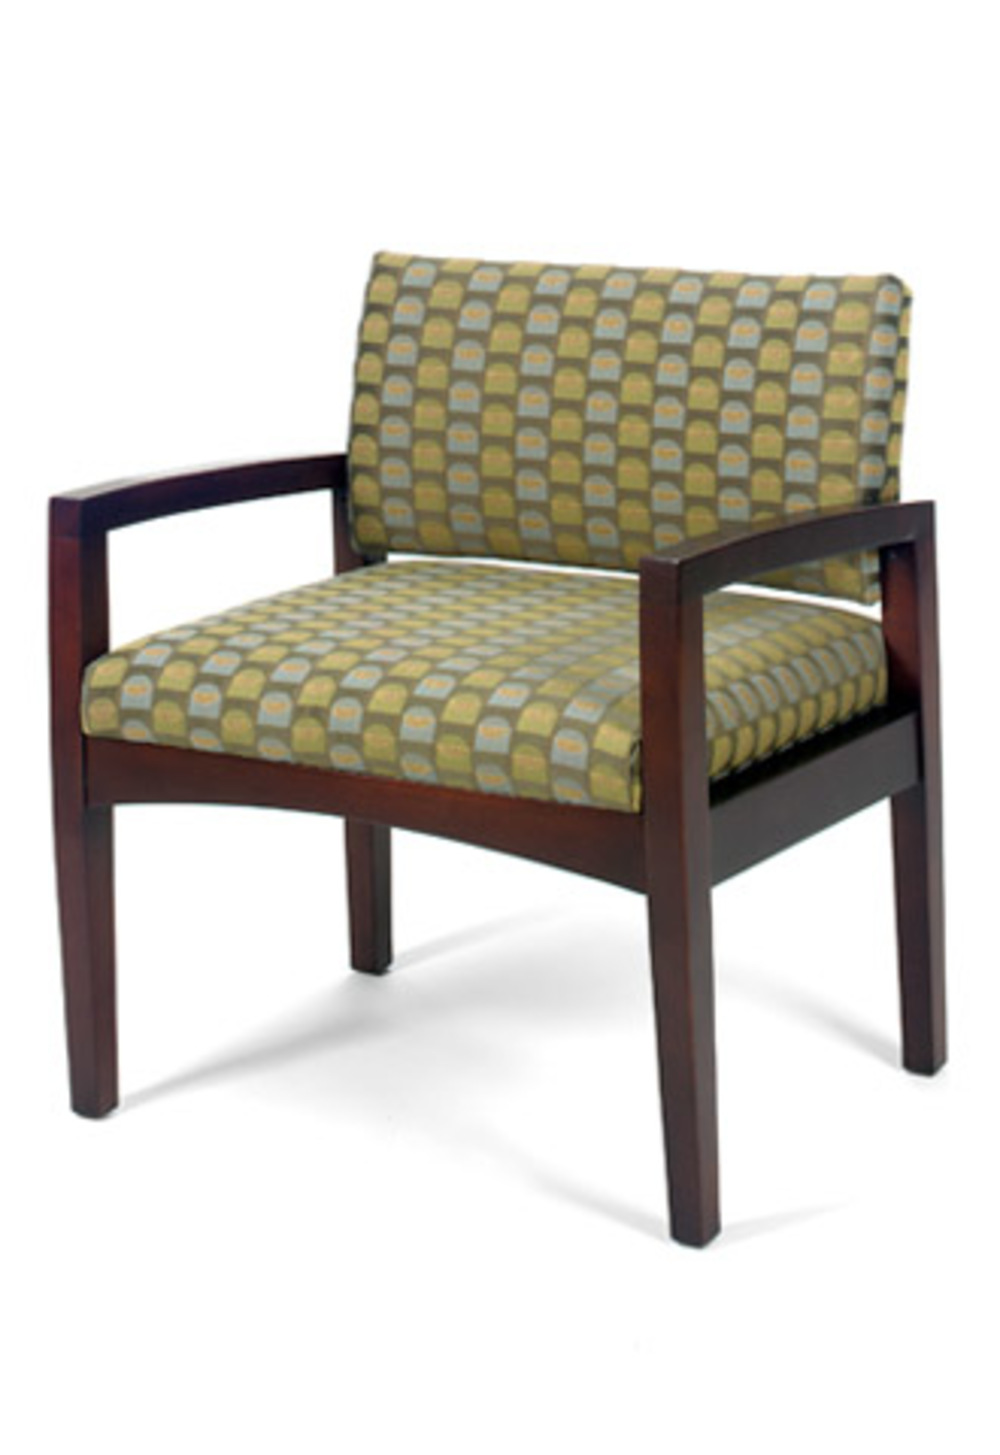 Style Upholstering - Commercial Chair